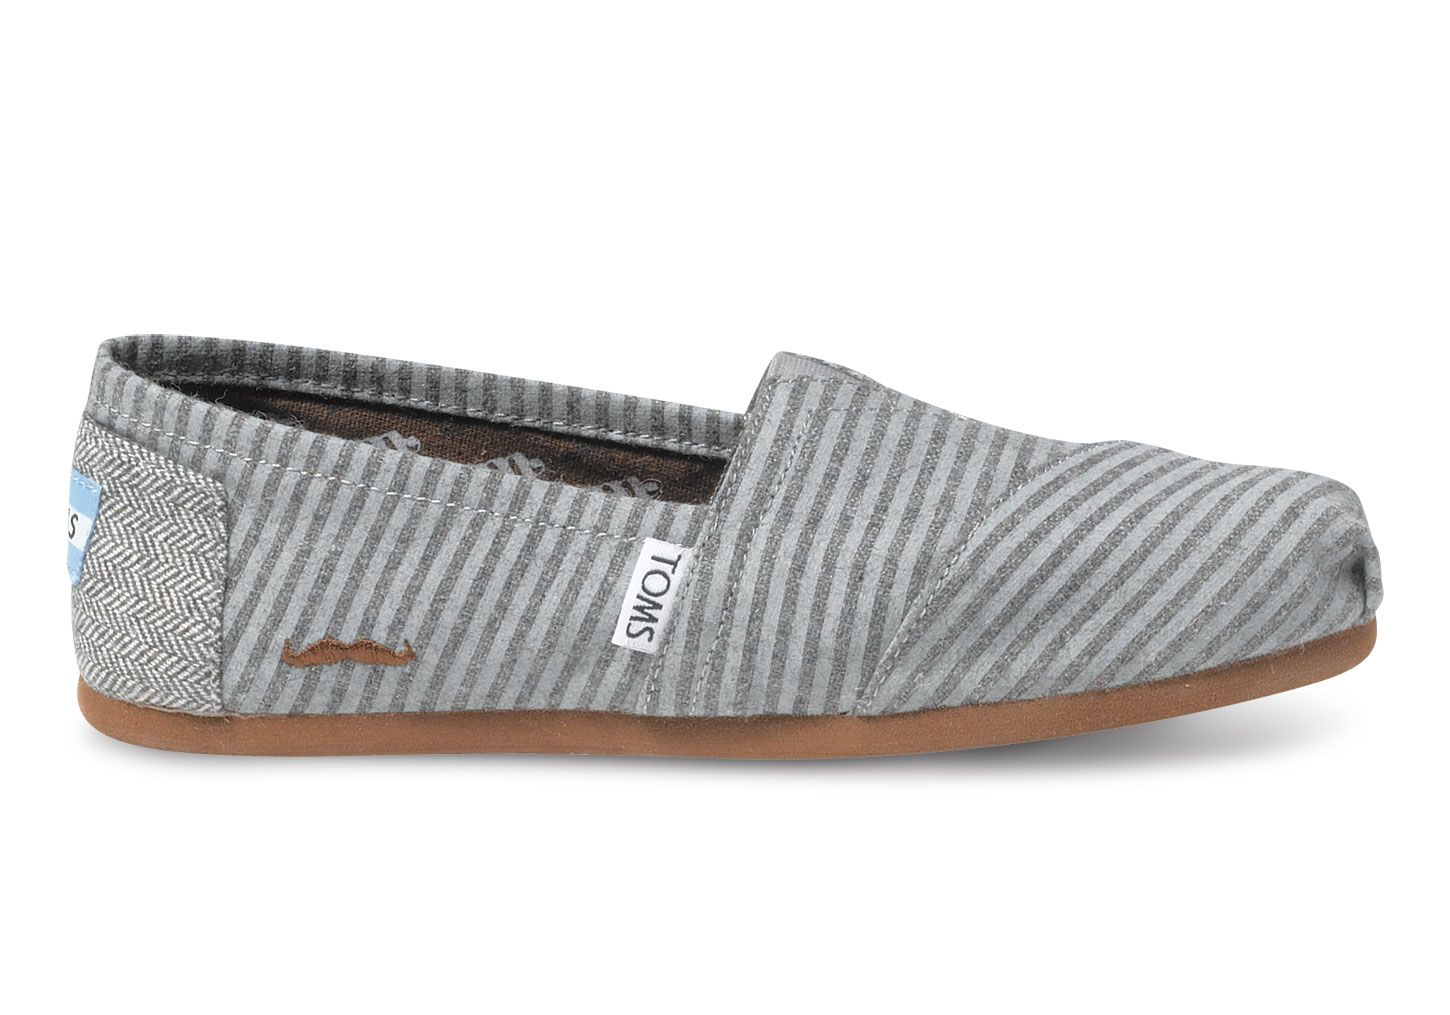 Communication on this topic: Movember x Toms Footwear, movember-x-toms-footwear/